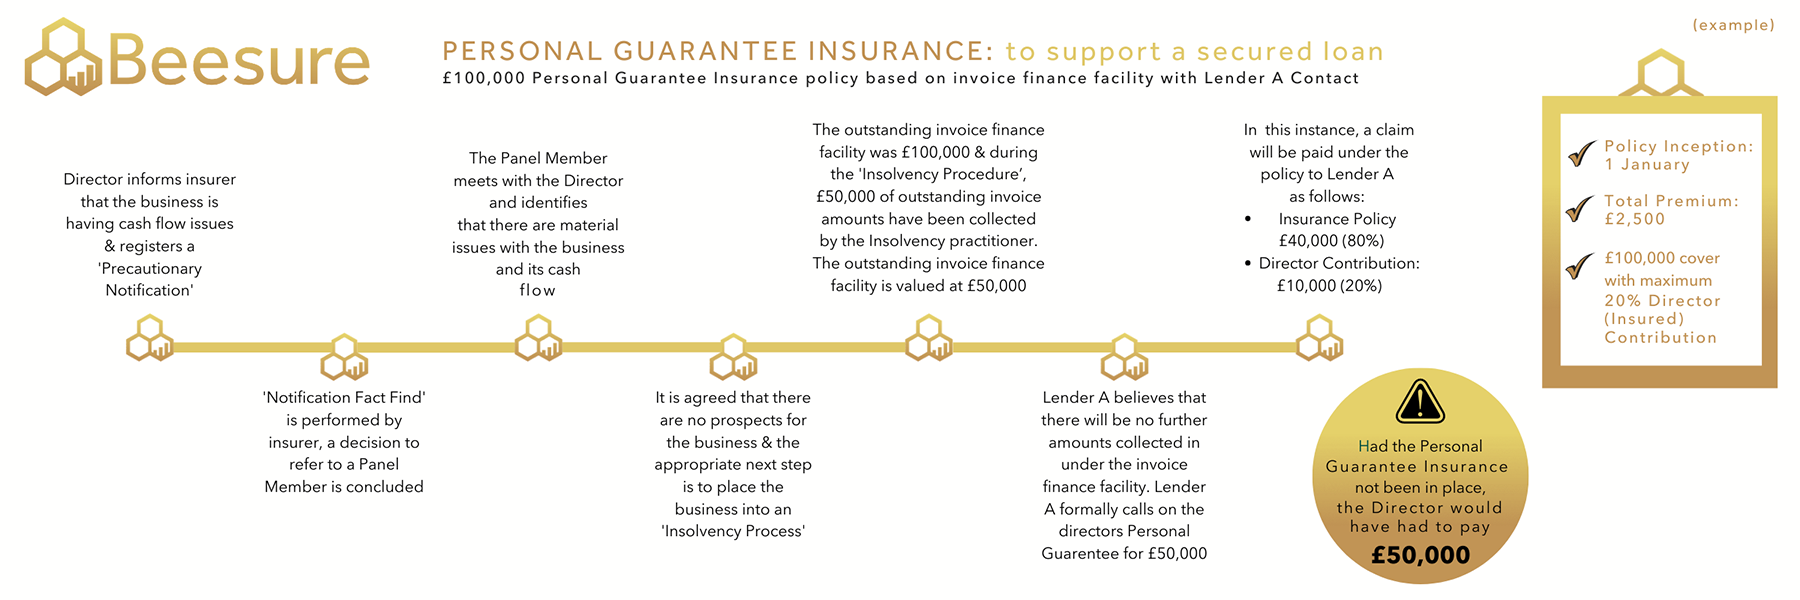 An Infographic of Beesure's Personal Guarantee Insurance